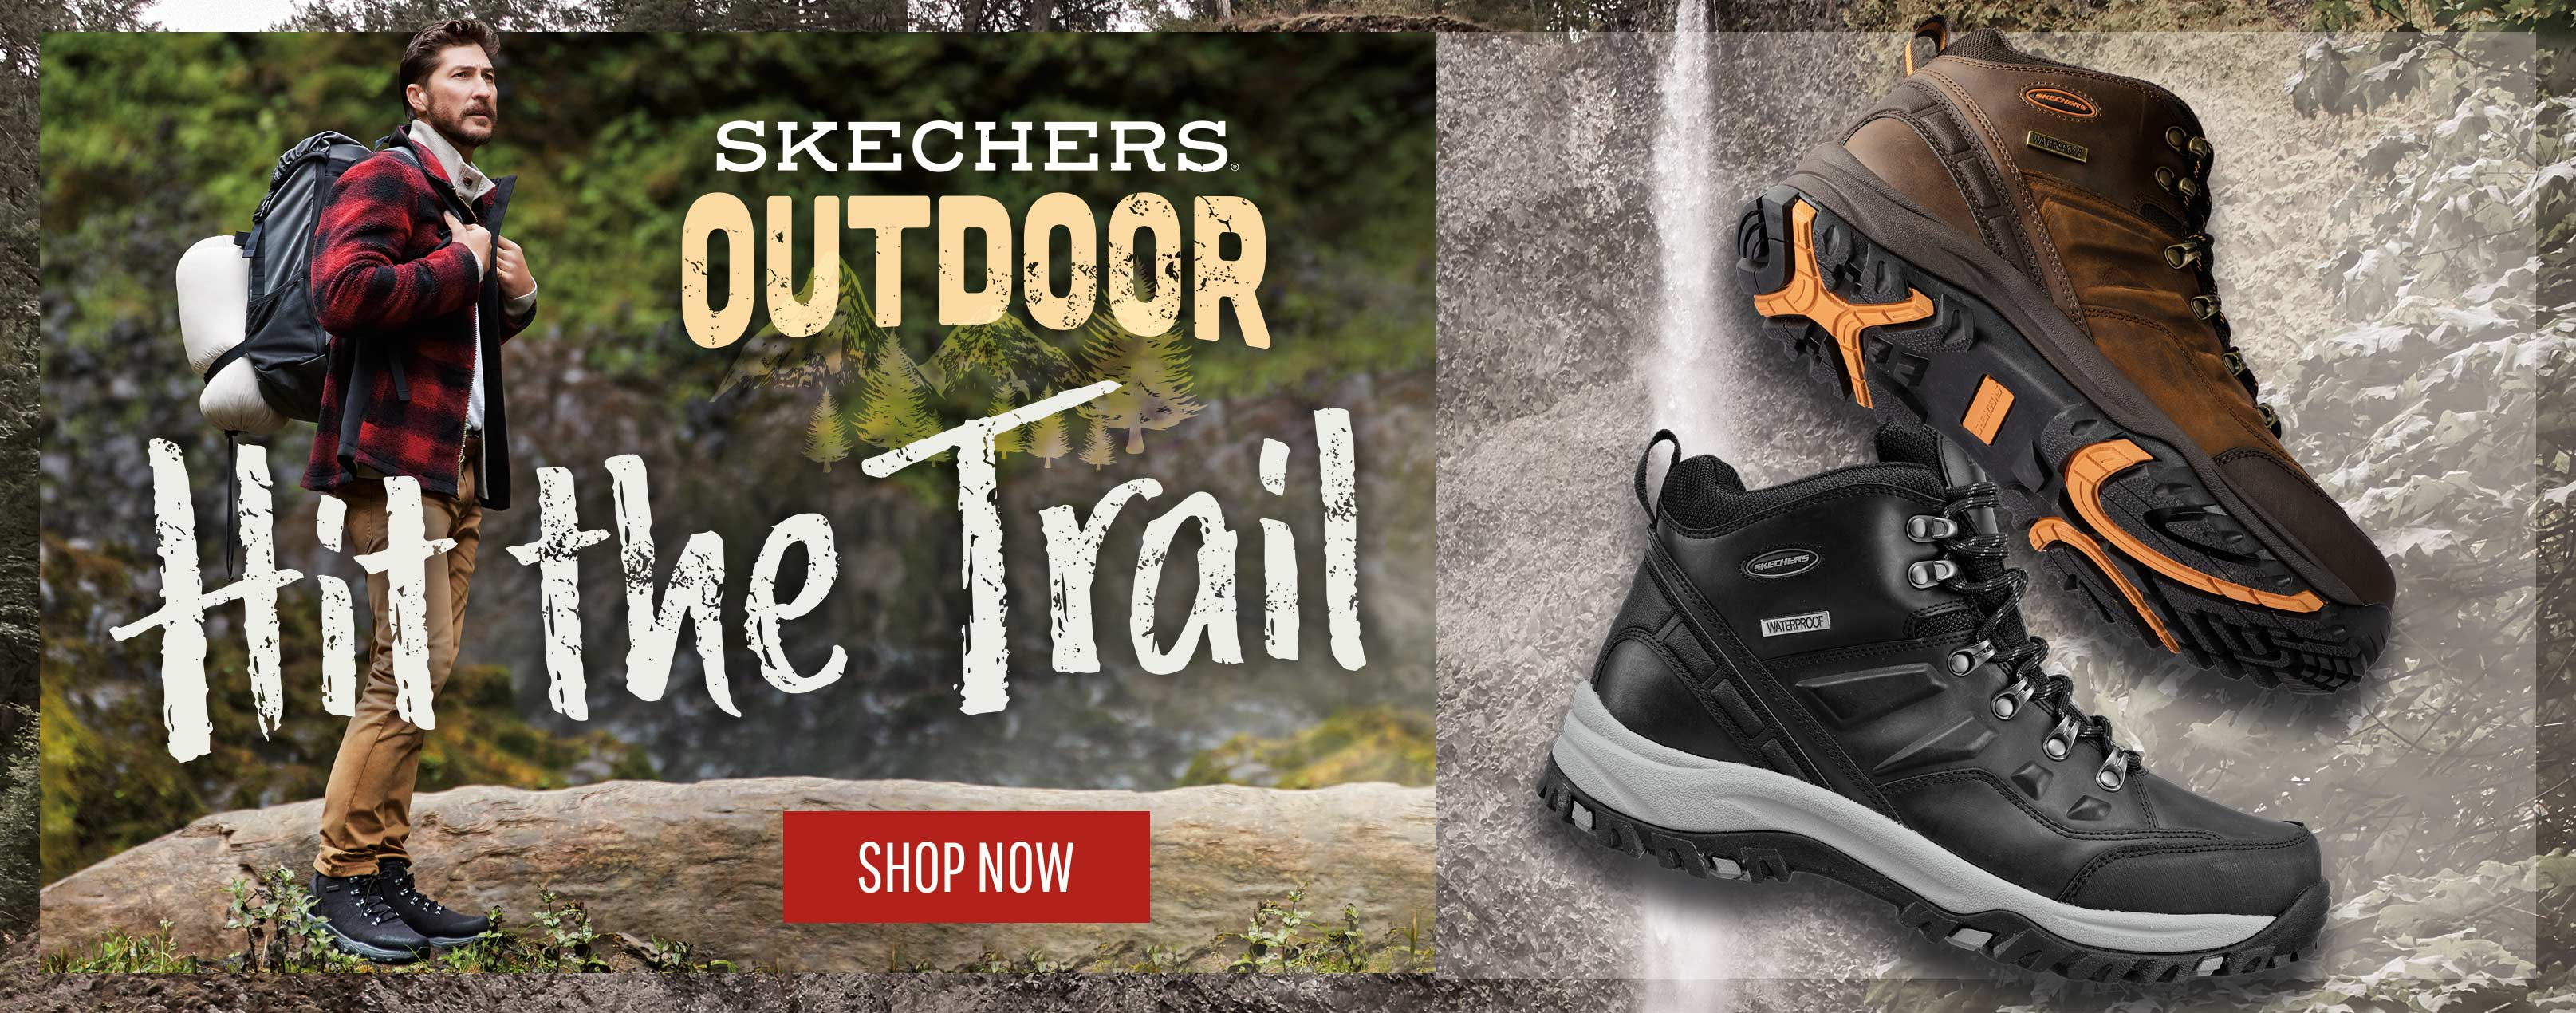 skechers official site uk